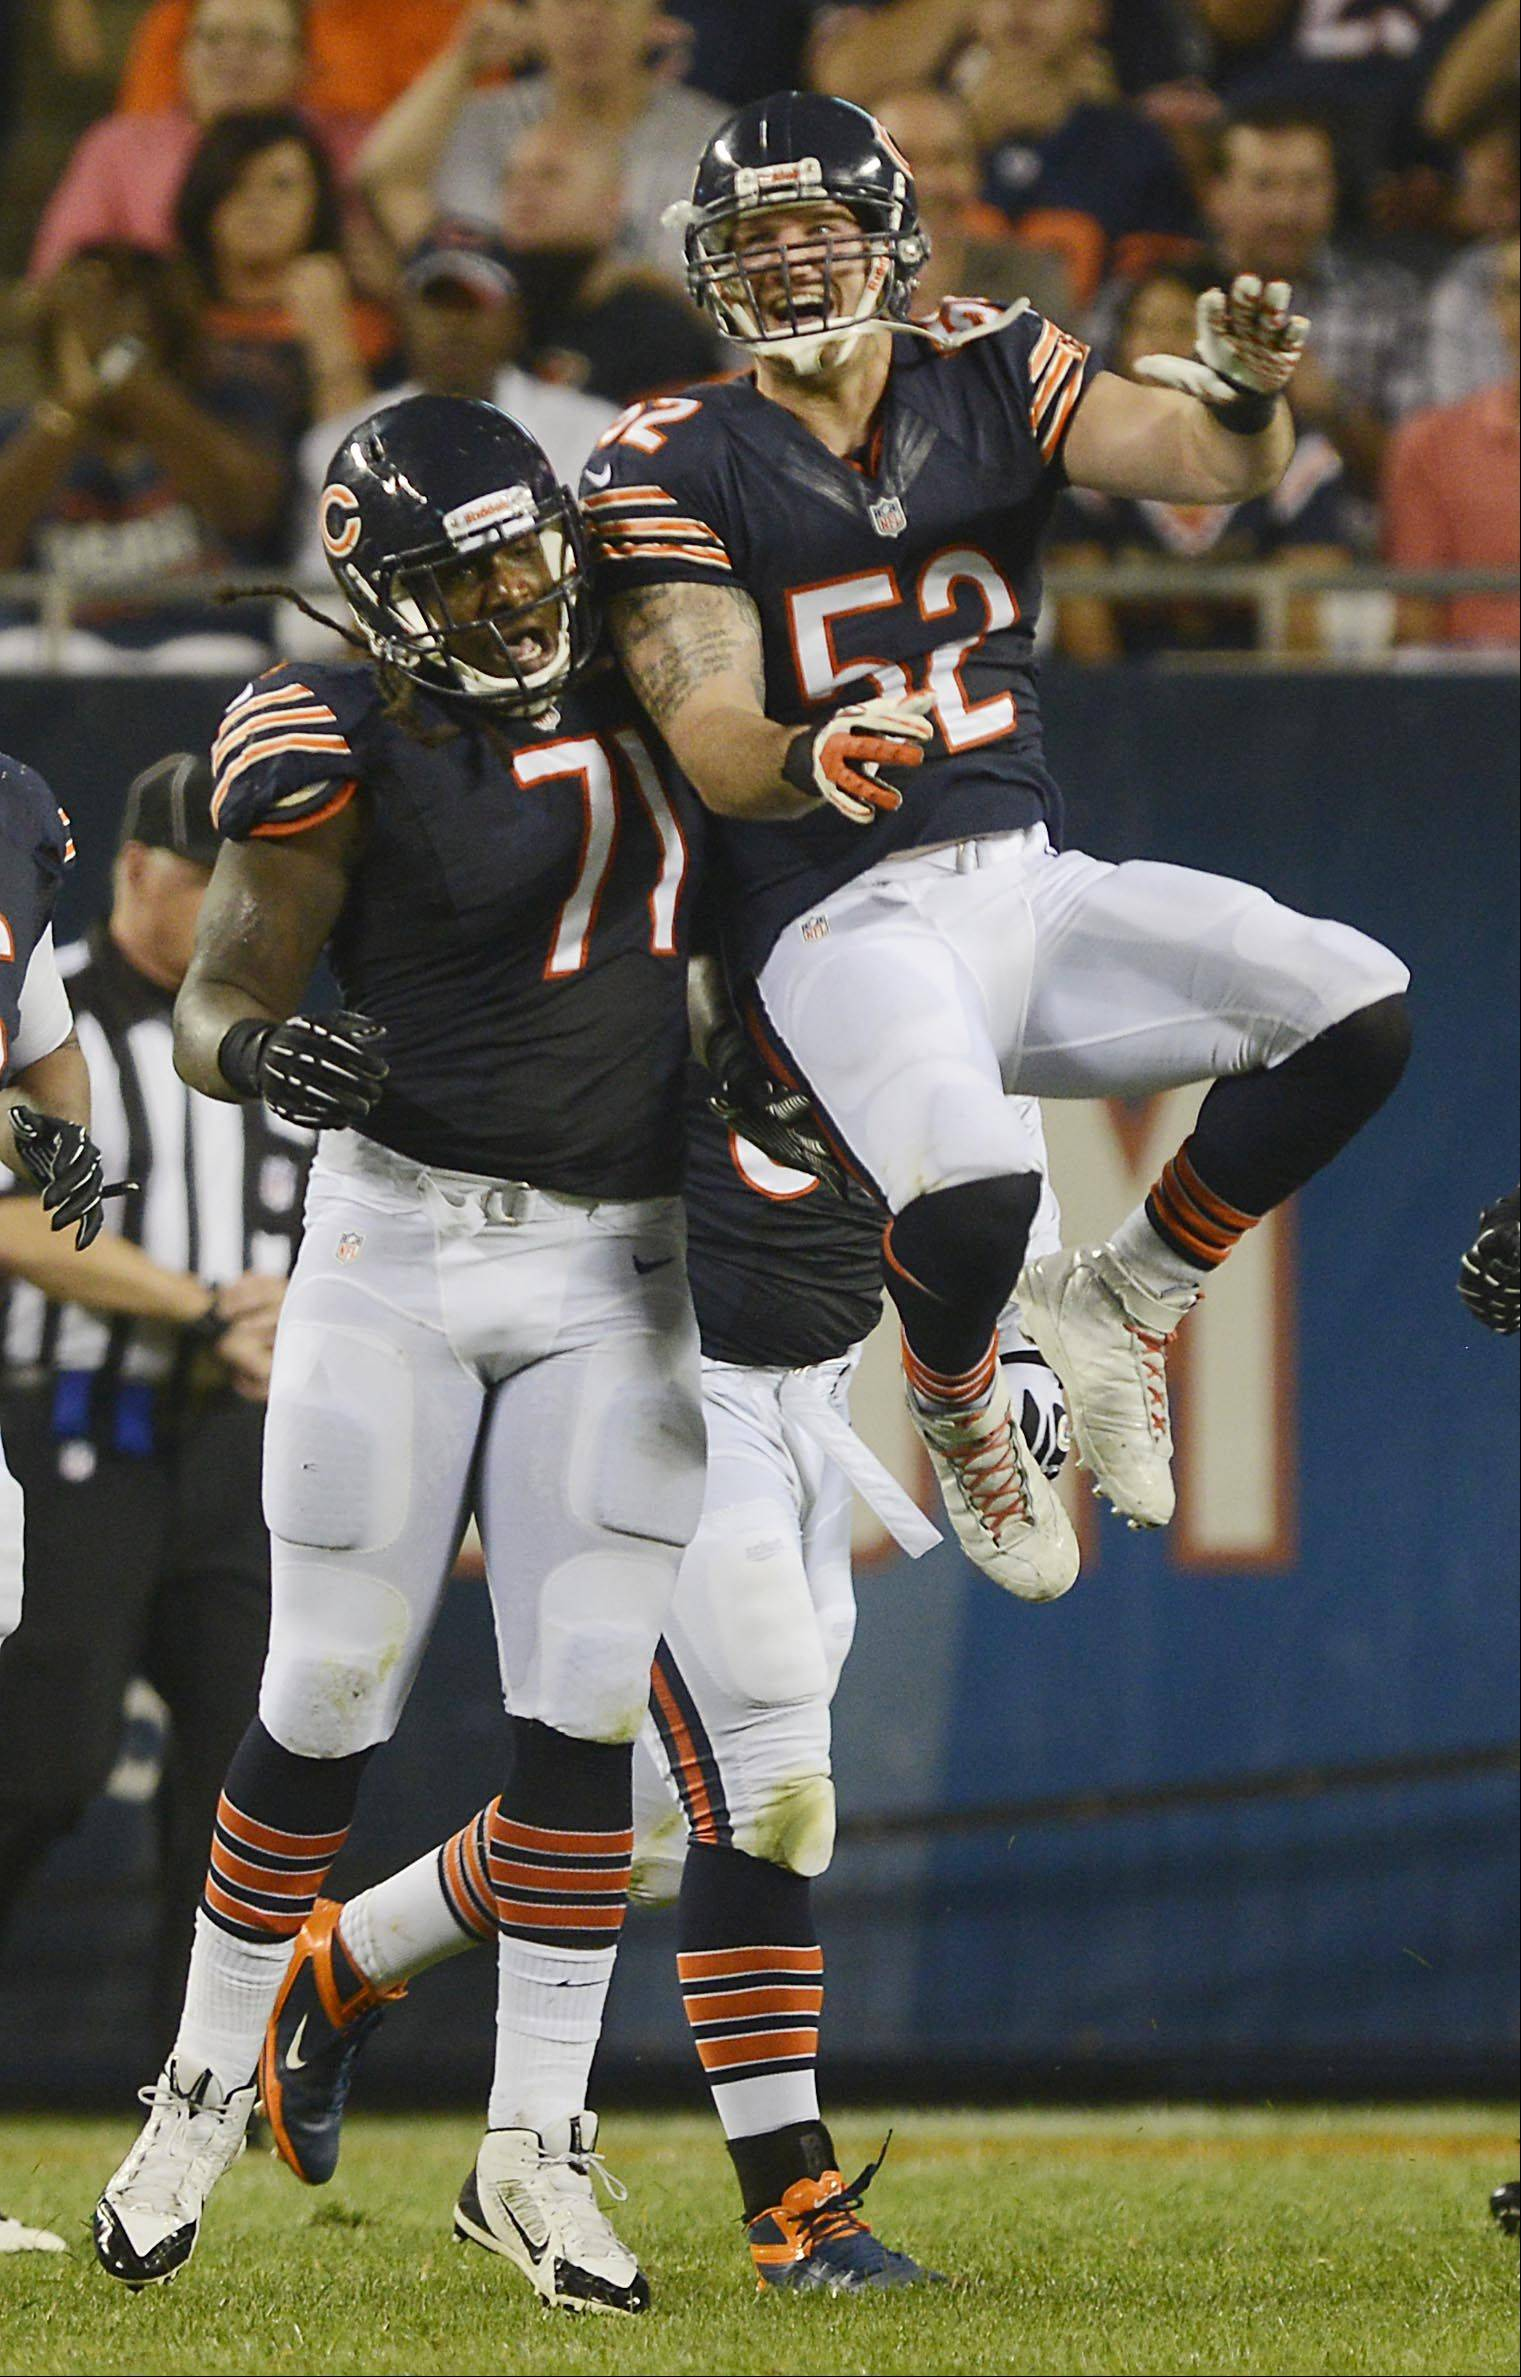 Chicago Bears outside linebacker Blake Costanzo celebrates teammate defensive end Aston Whiteside's sack .